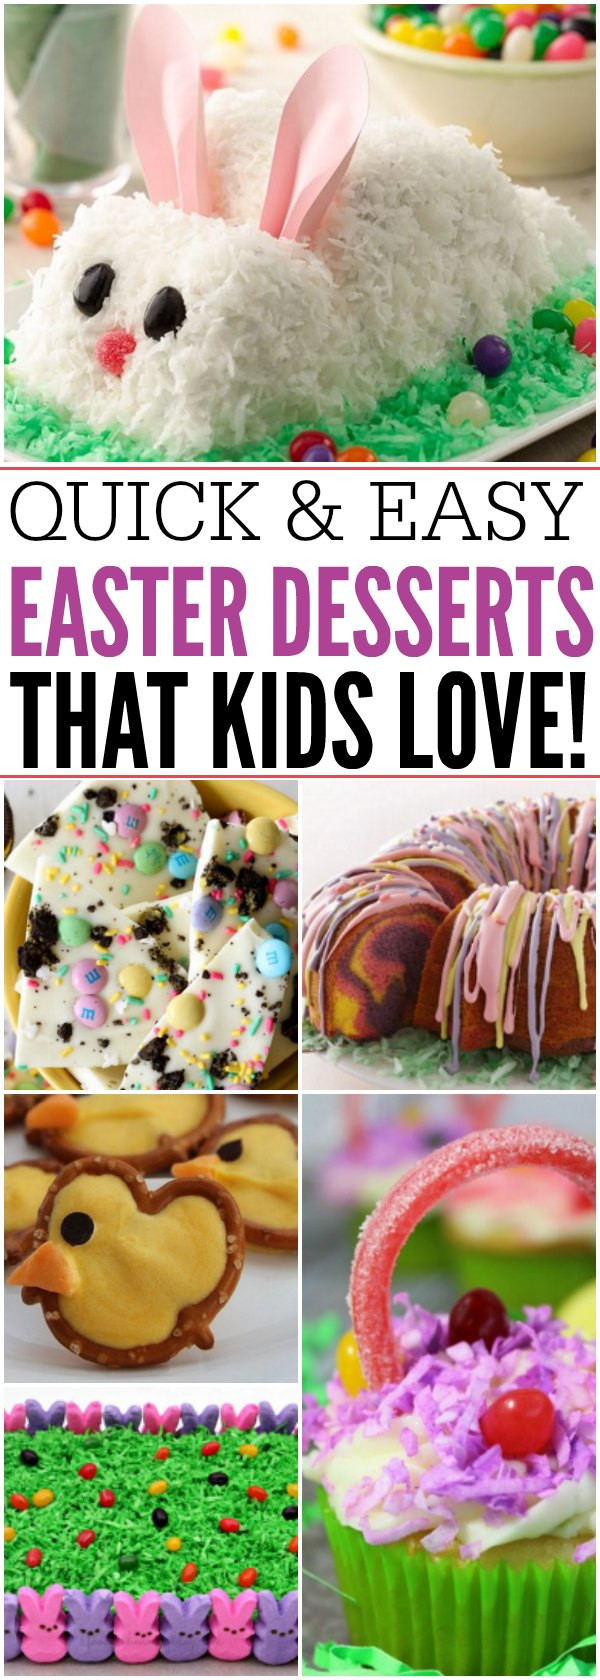 Kid Friendly Easter Desserts  16 Quick and Easy Easter Dessert Recipes That Everyone